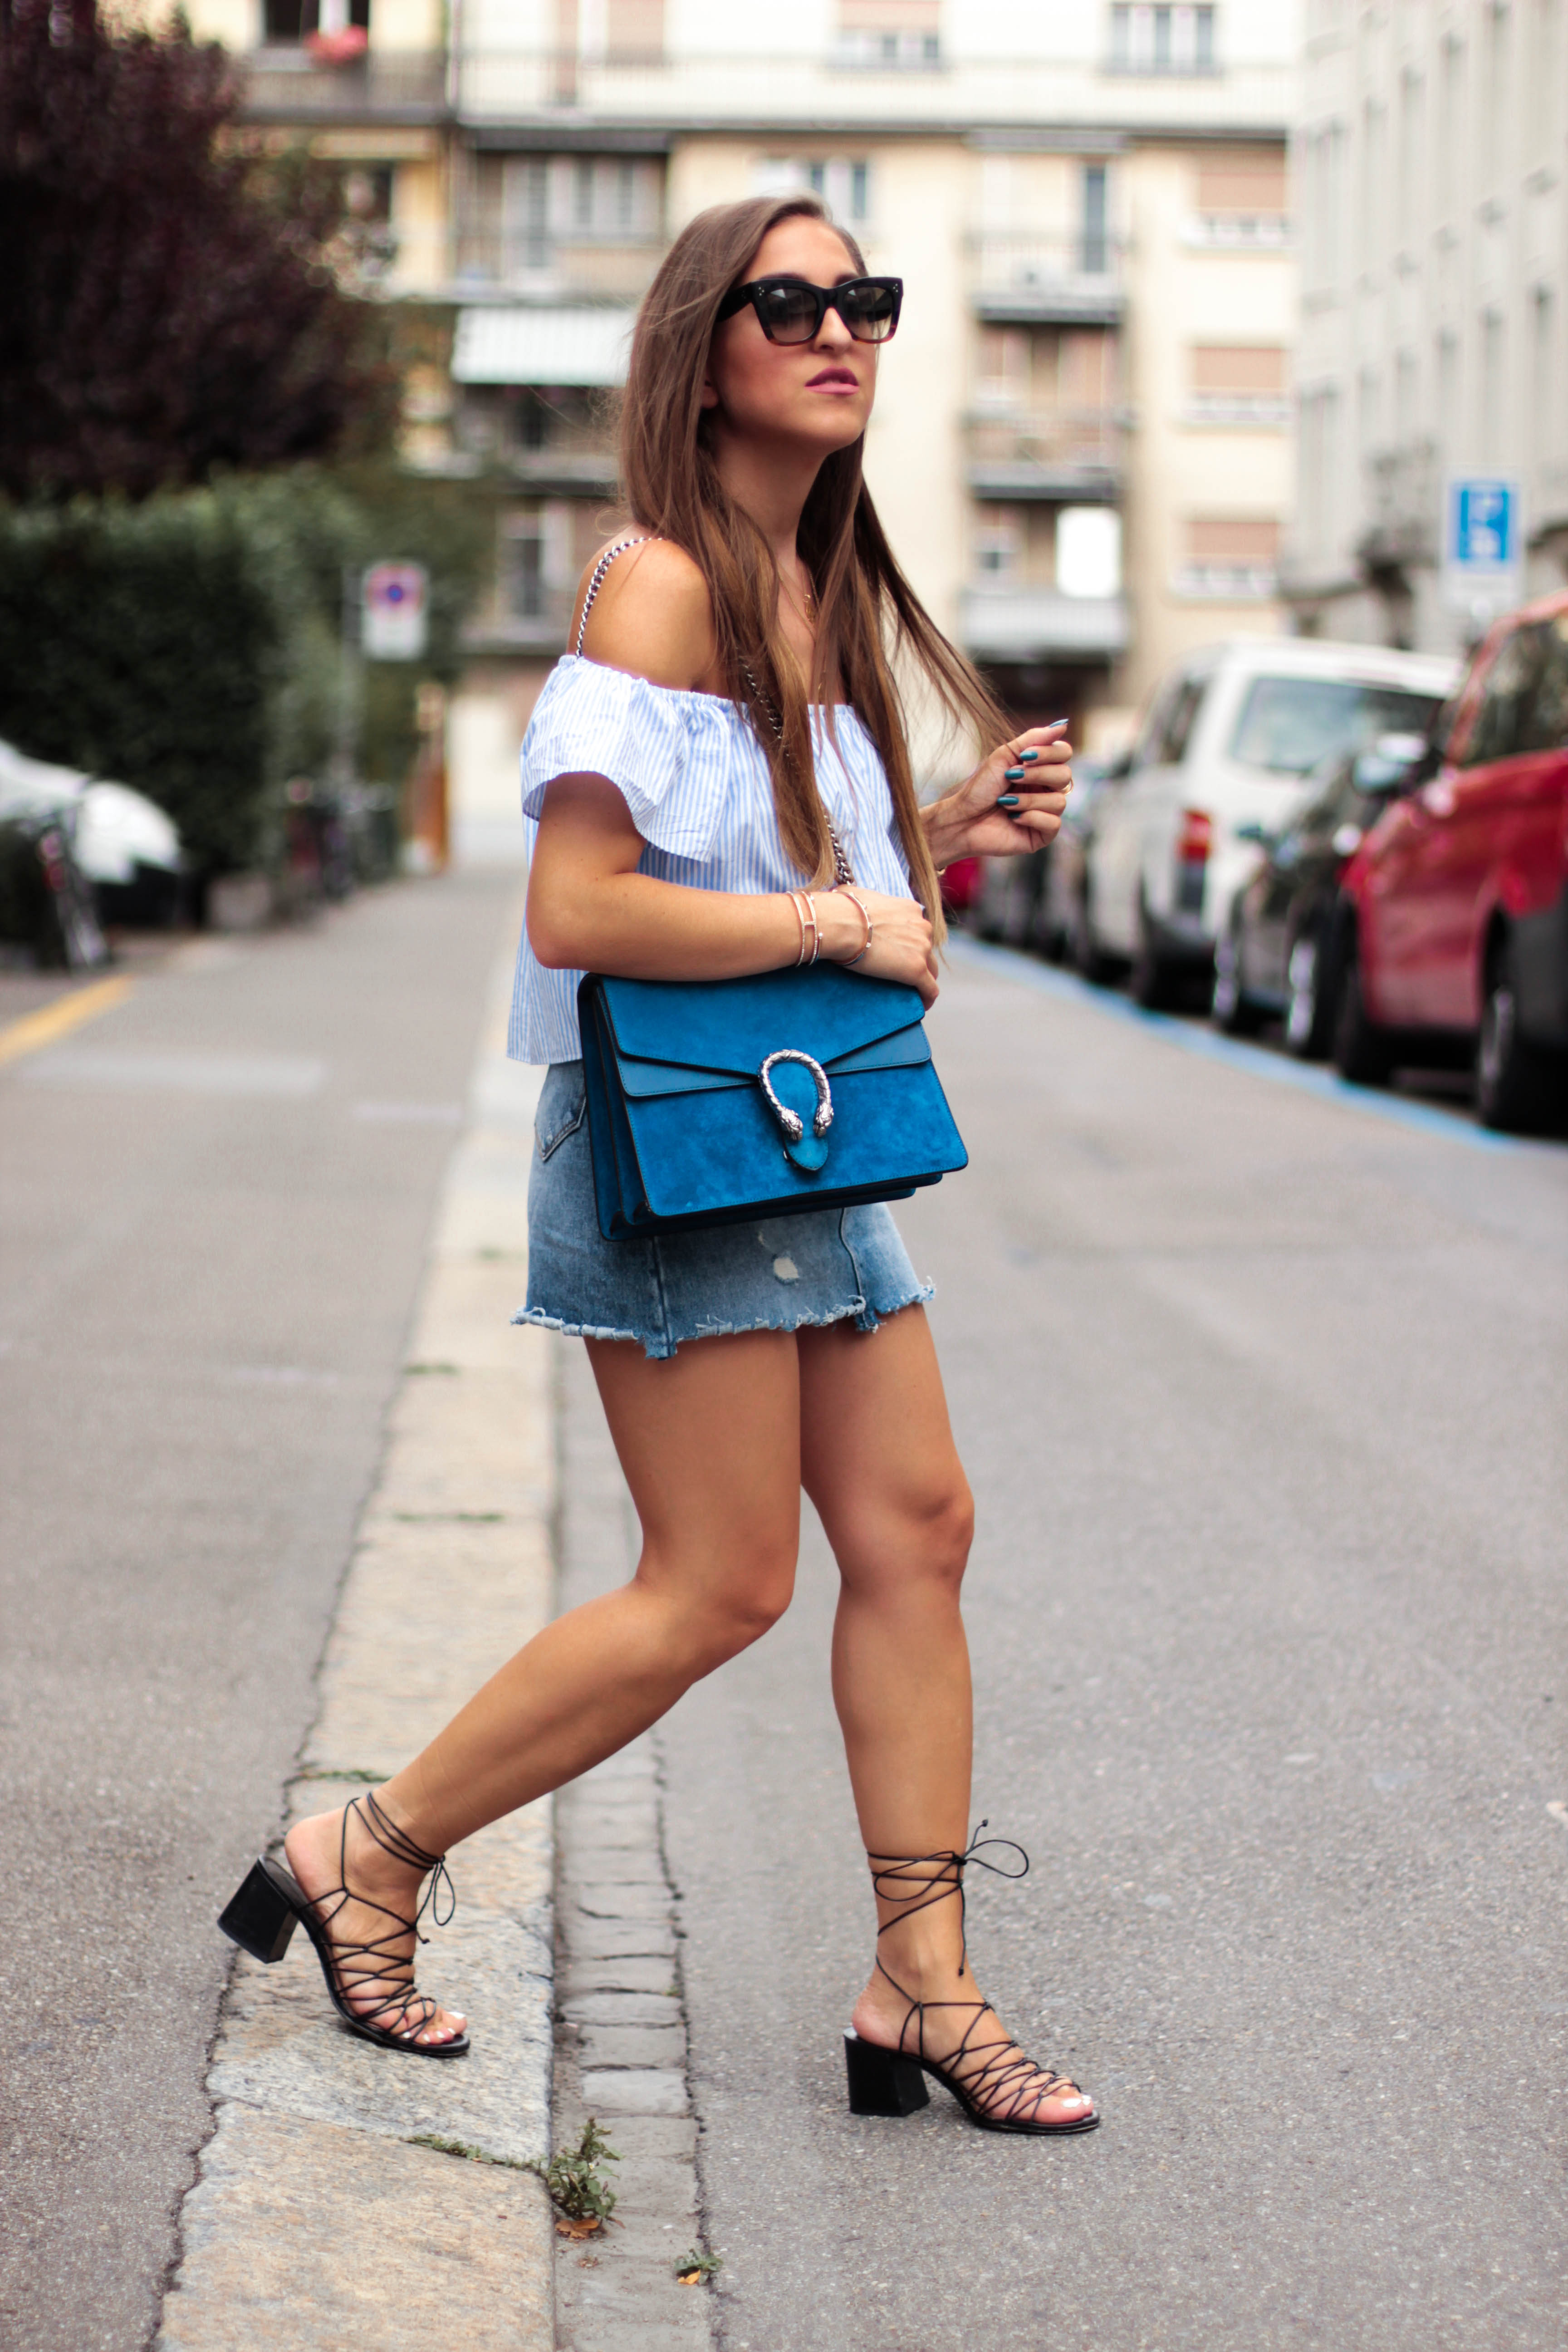 Buy Up fail skirt picture trends